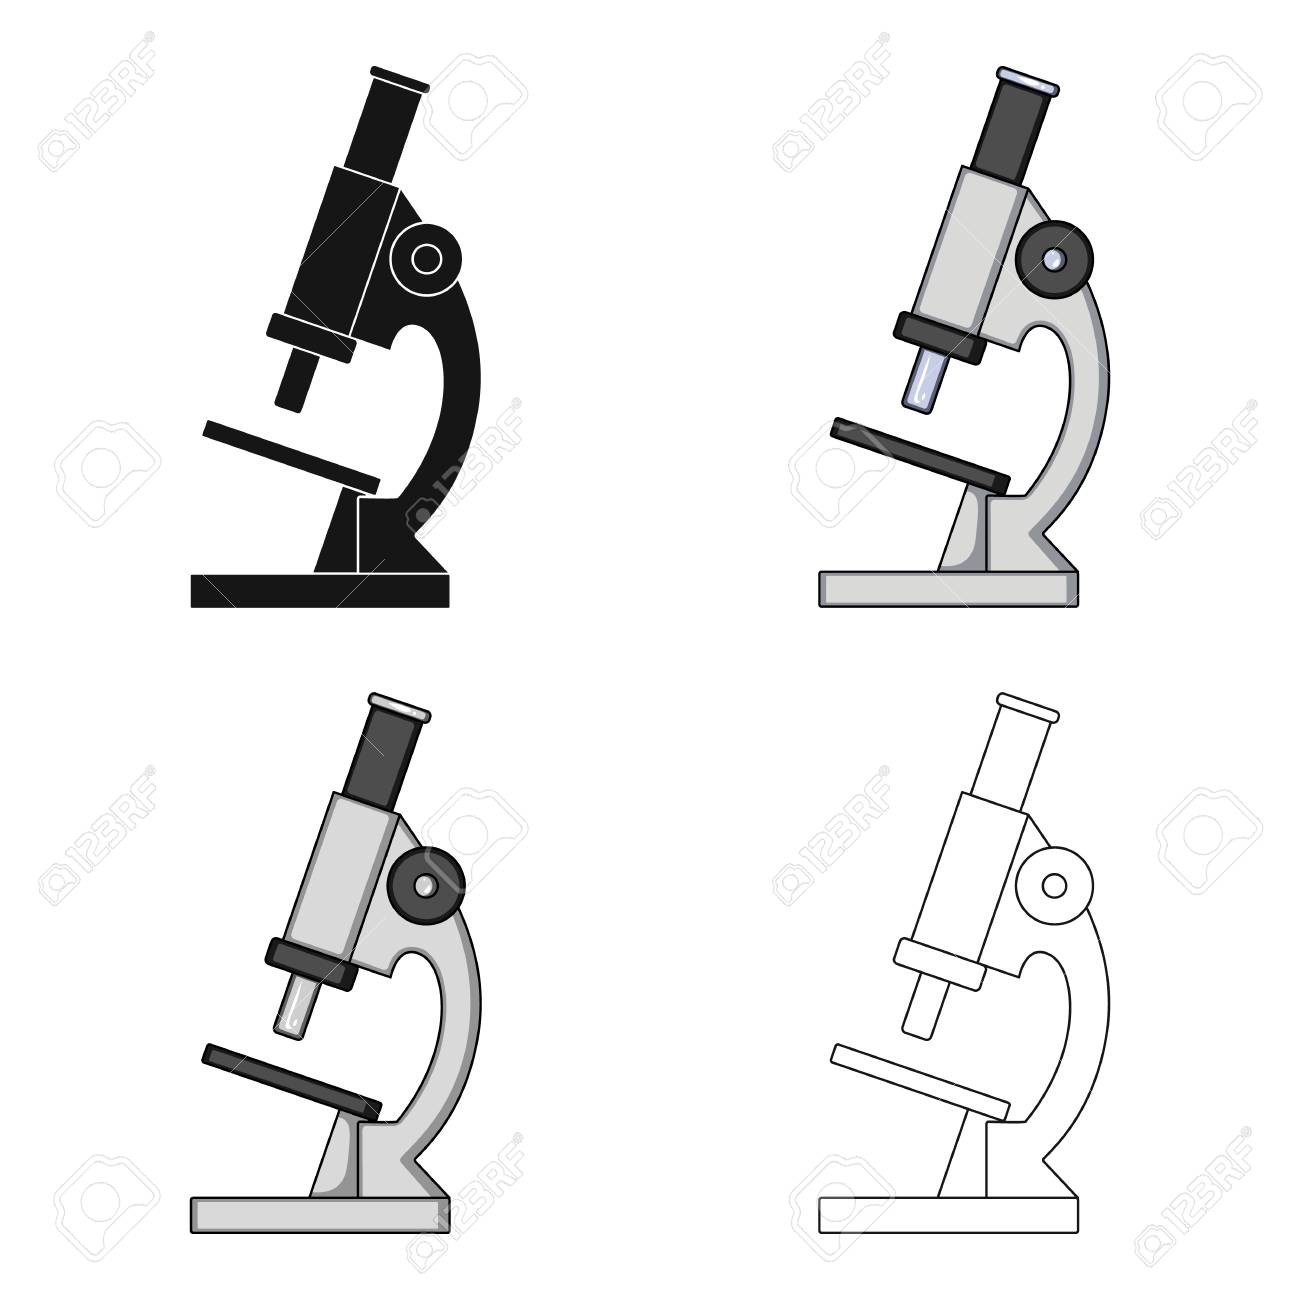 microscope medicine single icon in cartoon style vector symbol royalty free cliparts vectors and stock illustration image 77226590 microscope medicine single icon in cartoon style vector symbol